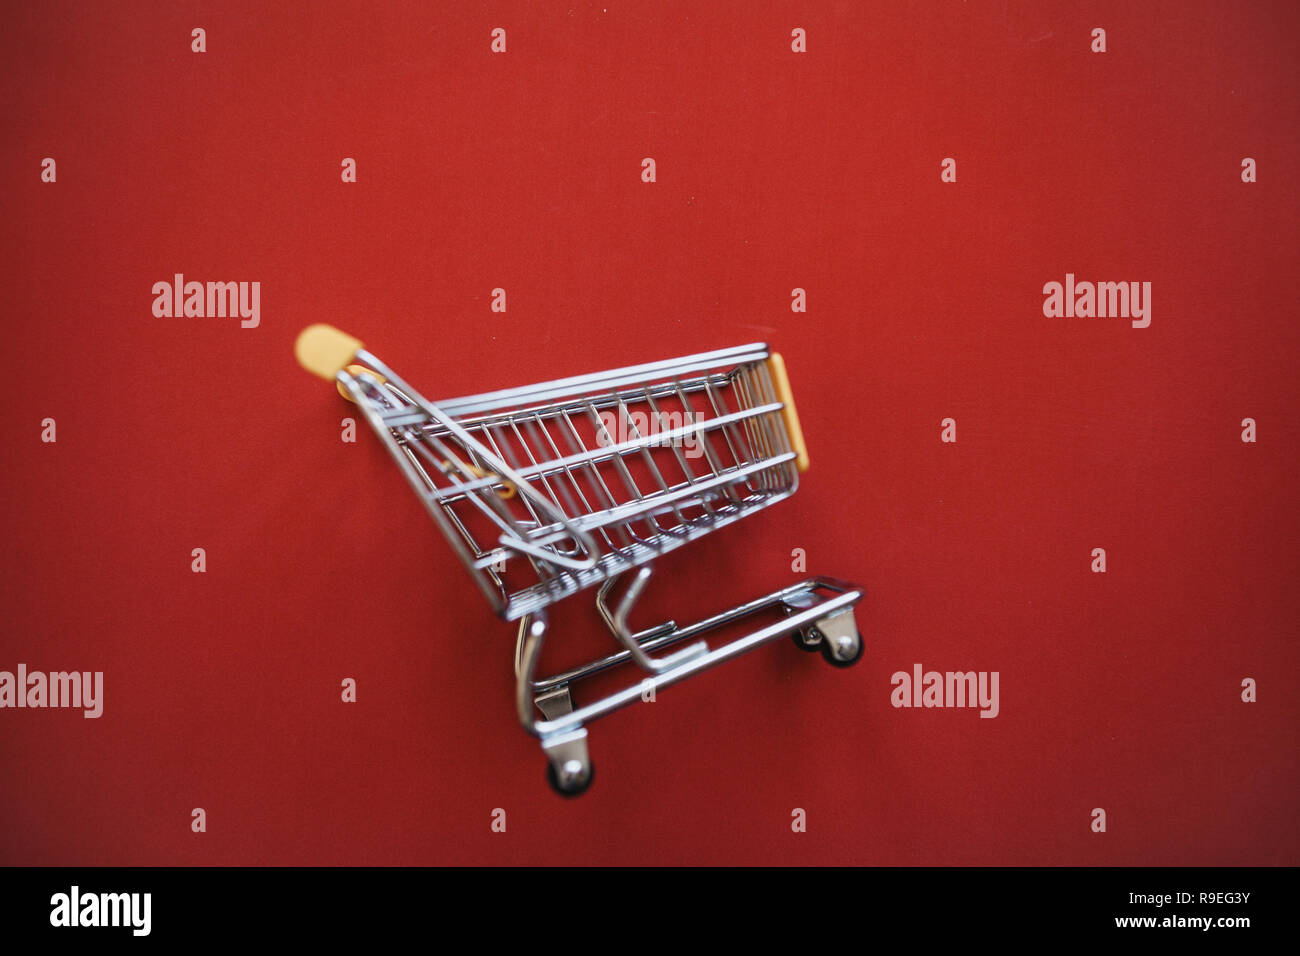 Empty shopping trolley on a red background. - Stock Image